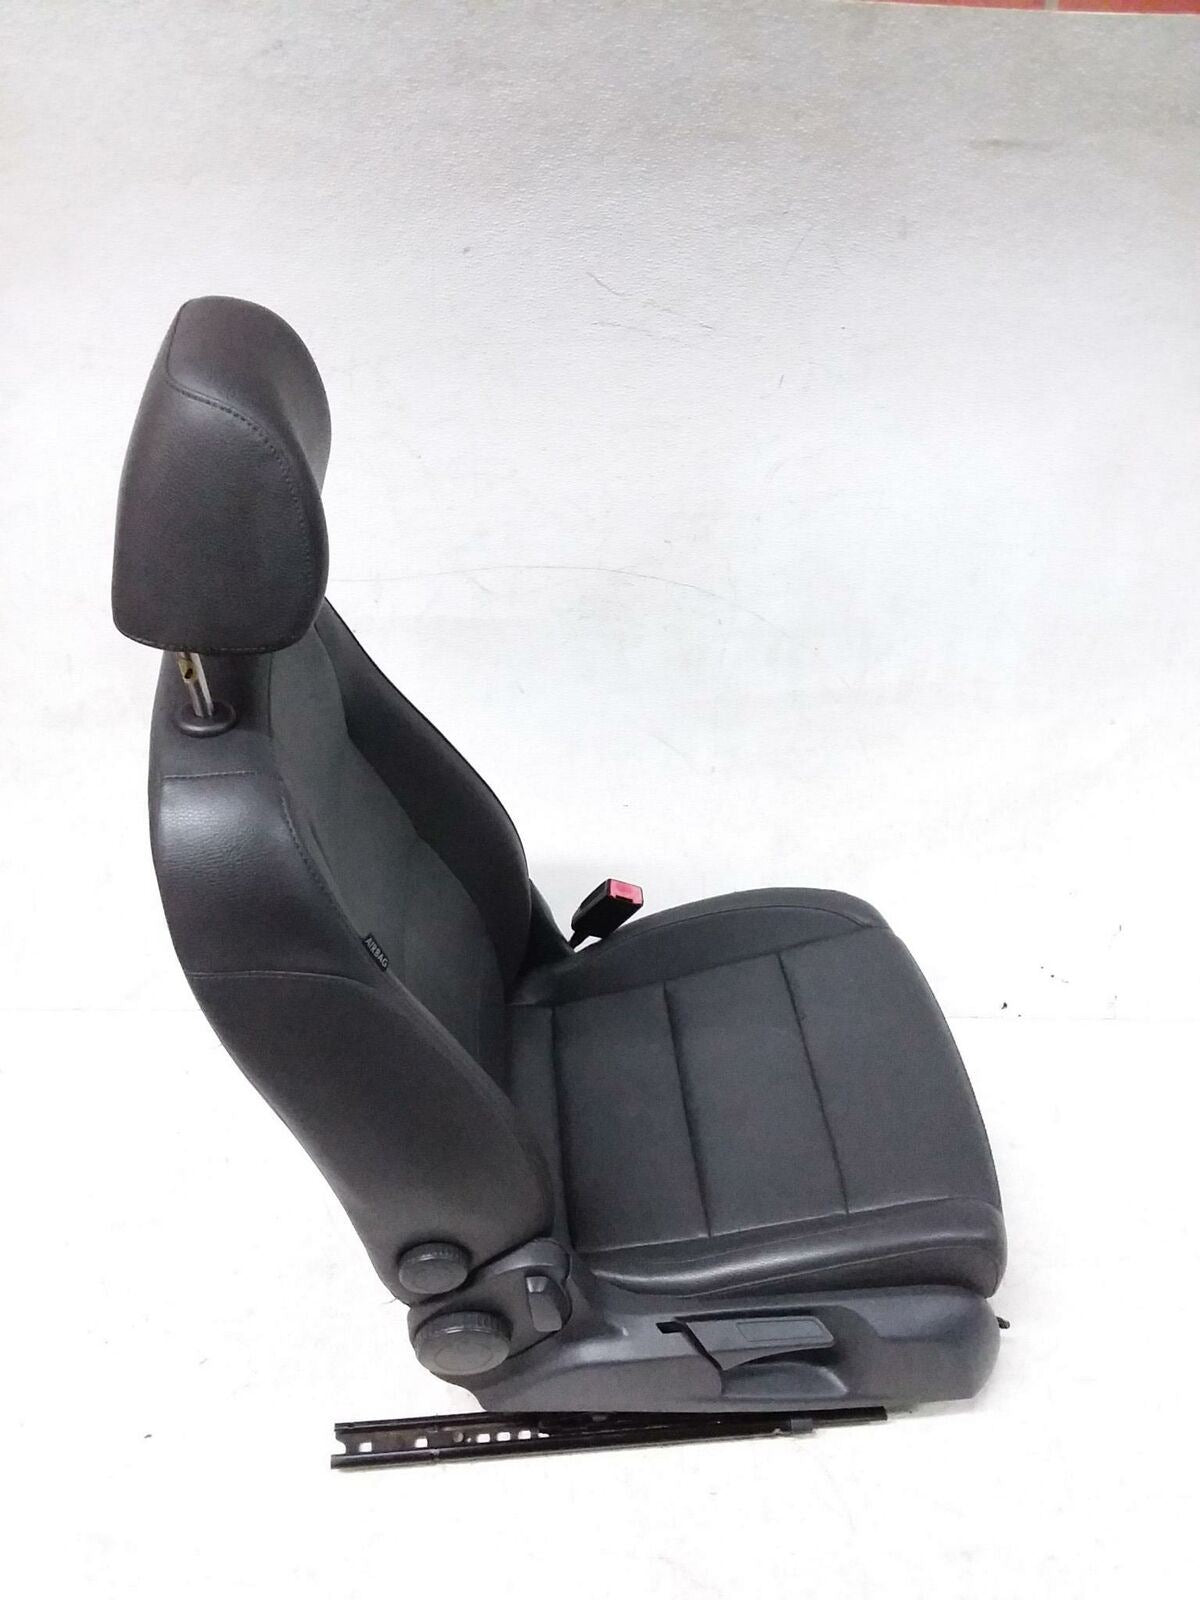 VOLKSWAGEN JETTA MK5 FRONT RIGHT HEATED SEAT FACTORY LEATHER OEM  2006 2007 2009